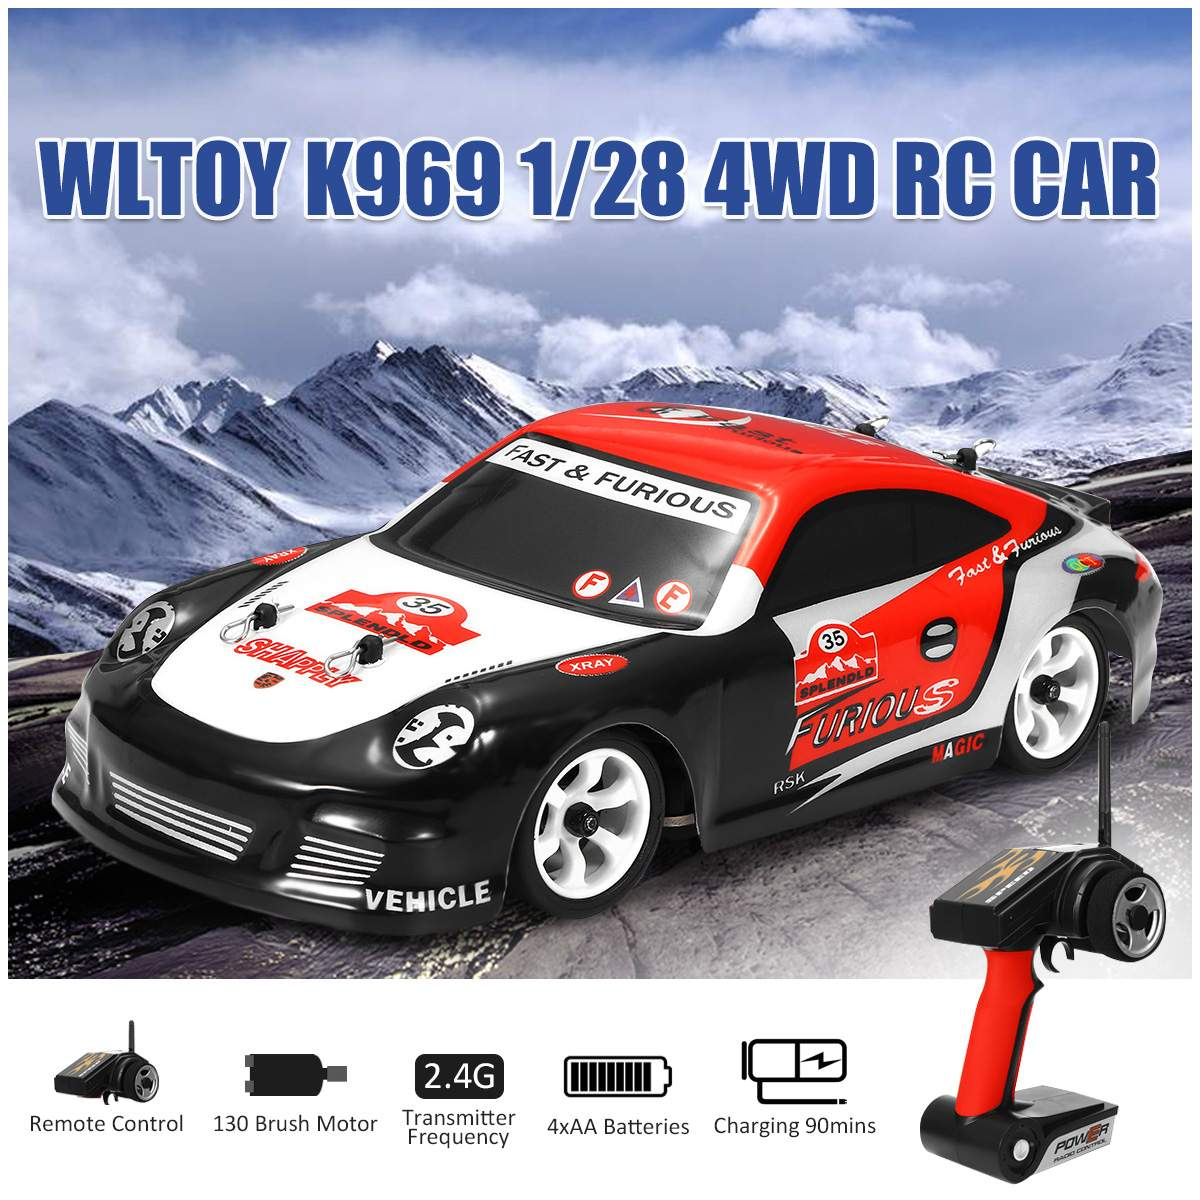 Electronic Wltoys K969 1/28 2.4G 4WD Brushed High Speed Drift RC Kids Toy Car Independent Shockproof System 130 Brush Motor